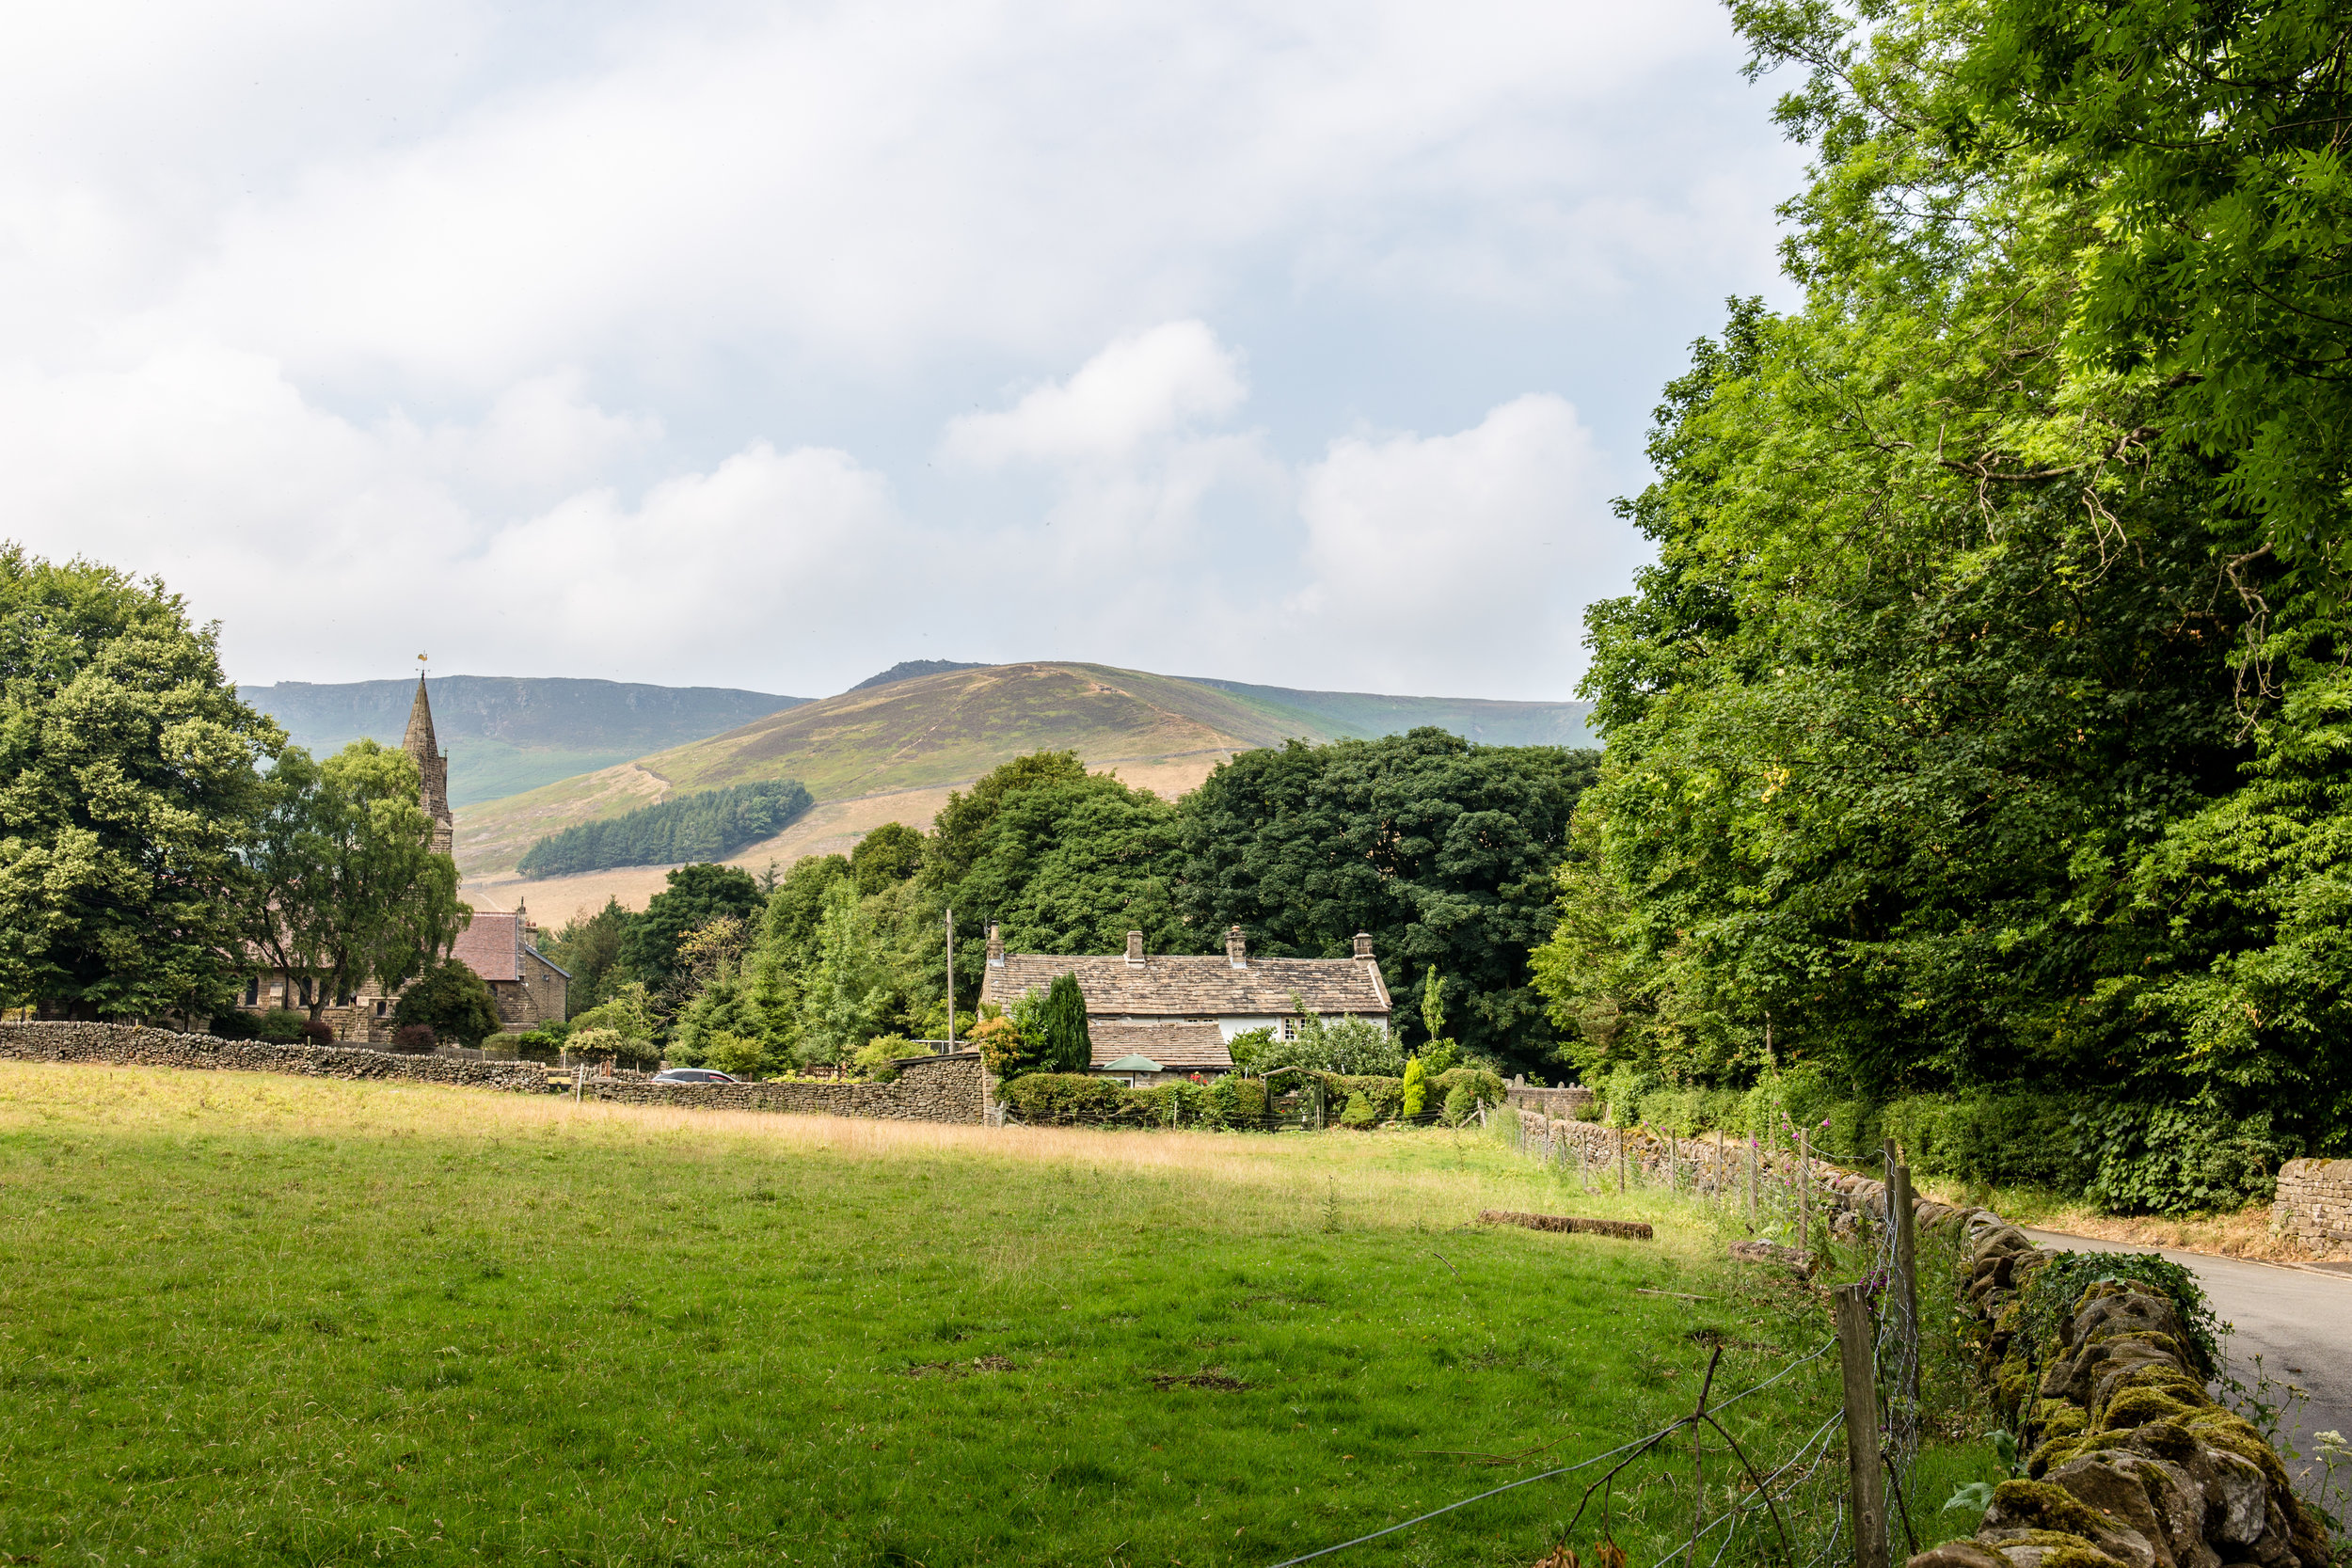 A view of Edale, heading up from the train station